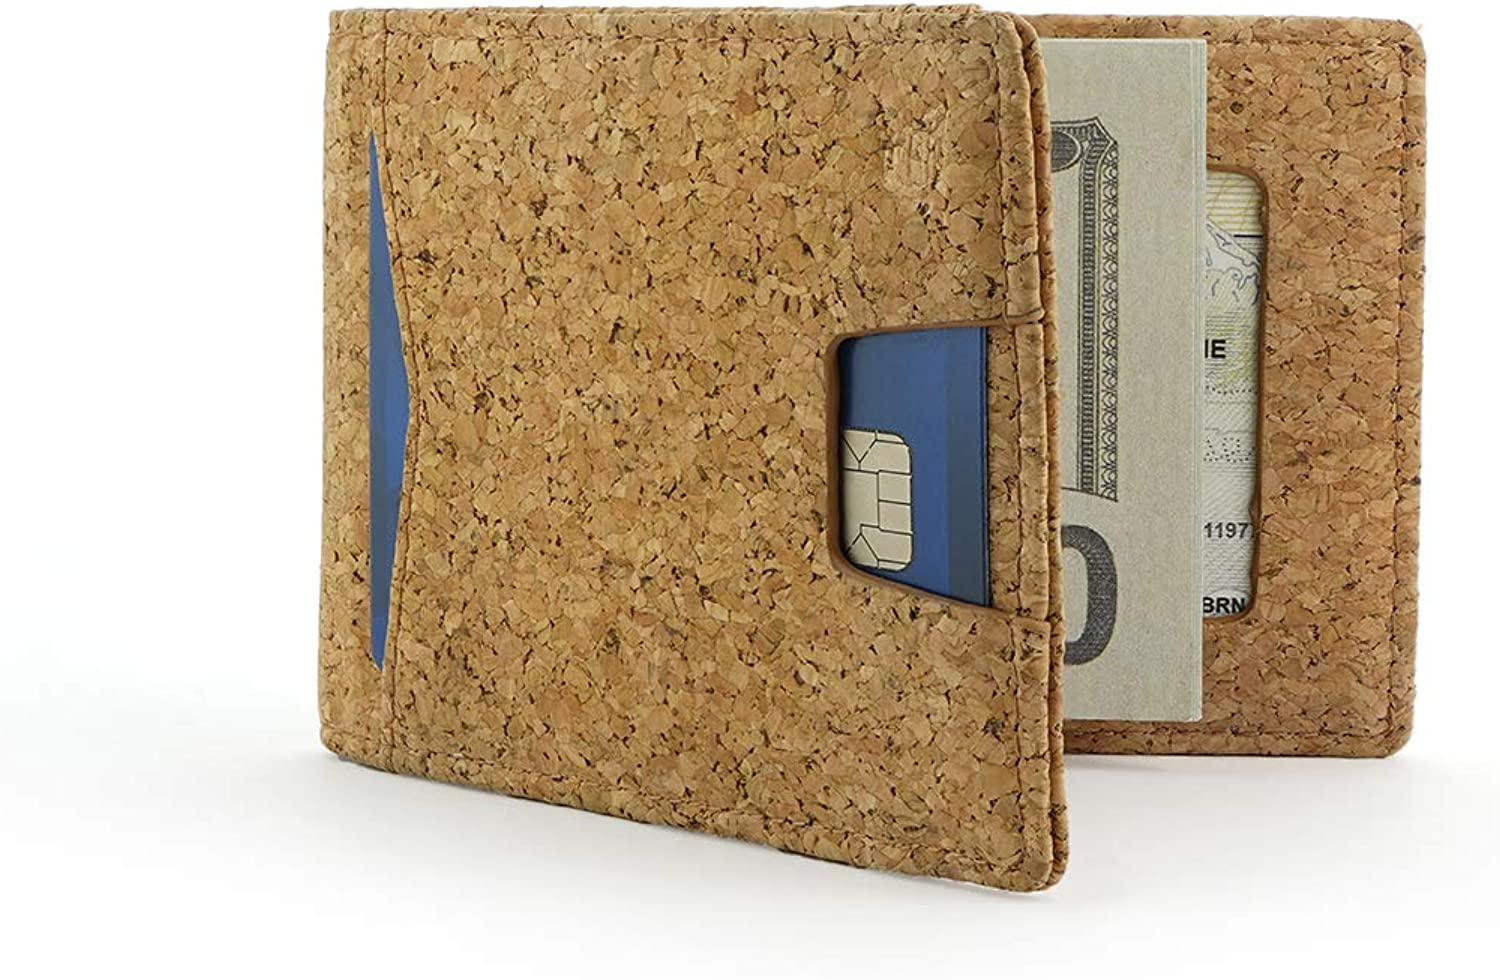 Andar Leather Slim RFID Blocking Minimalist Bifold Wallet with Money Clip made of Full Grain Leather